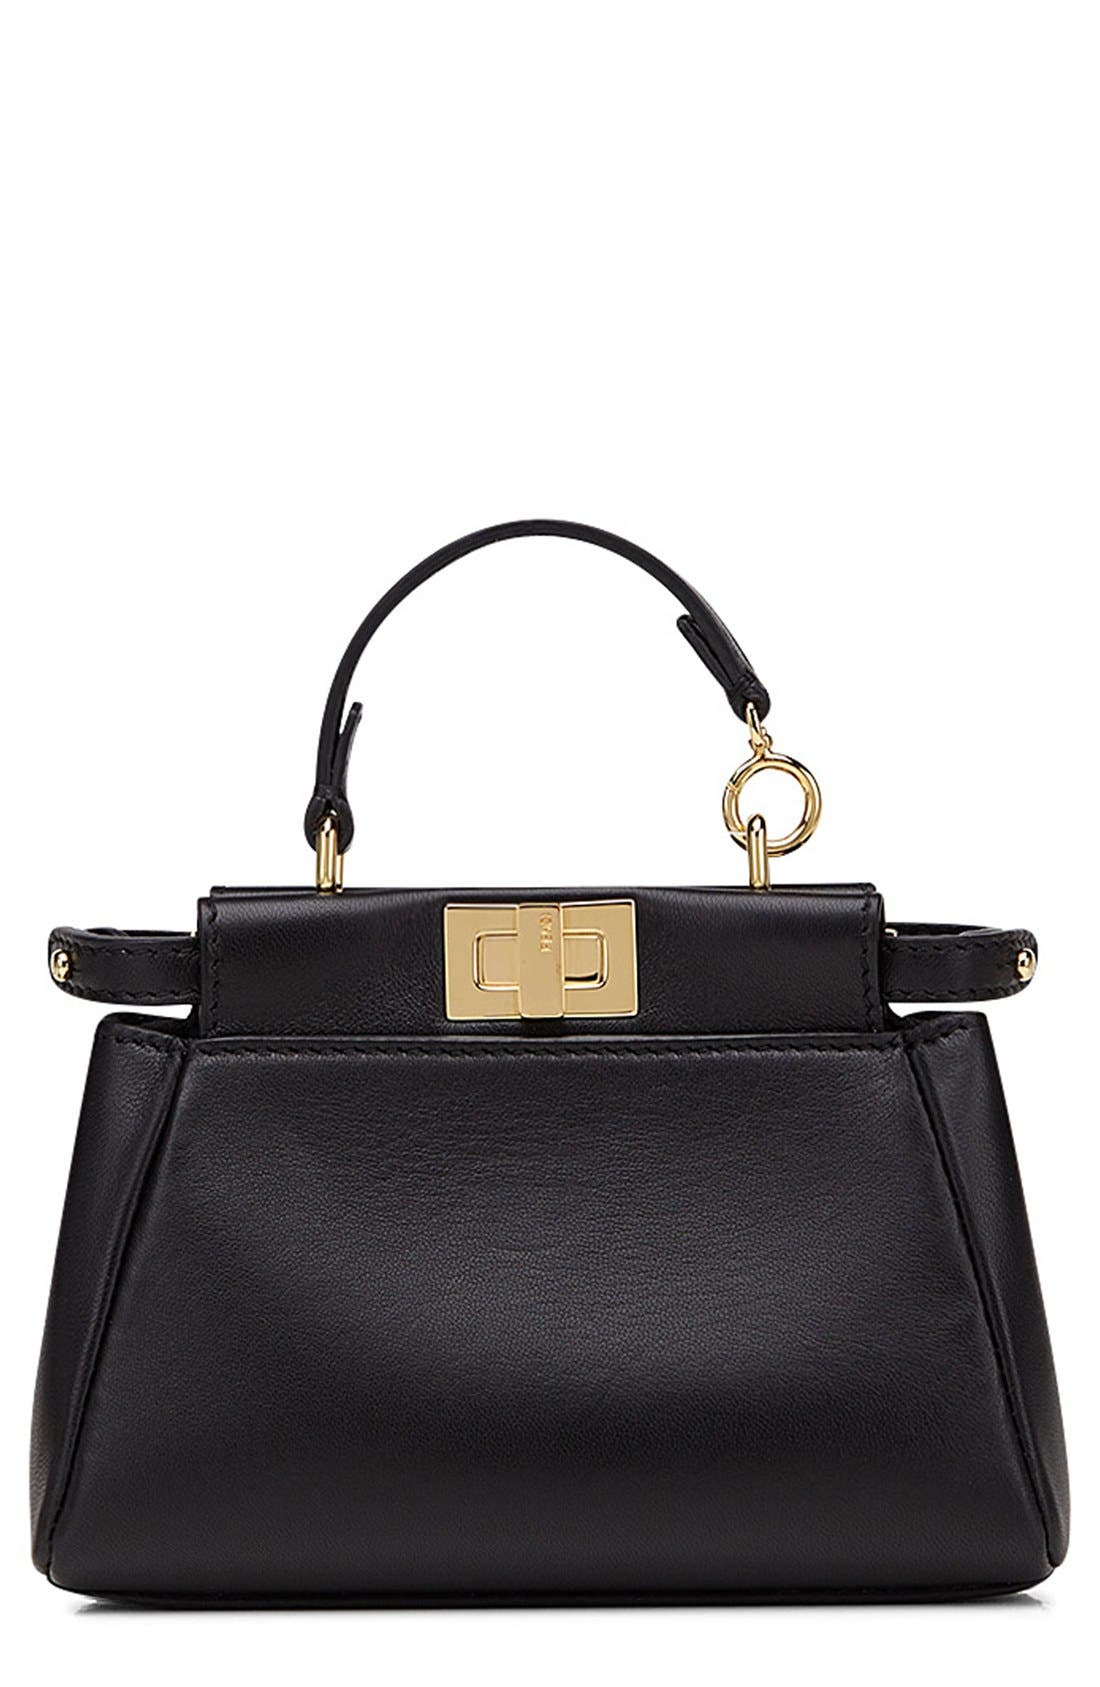 Fendi 'Micro Peekaboo' Nappa Leather Bag